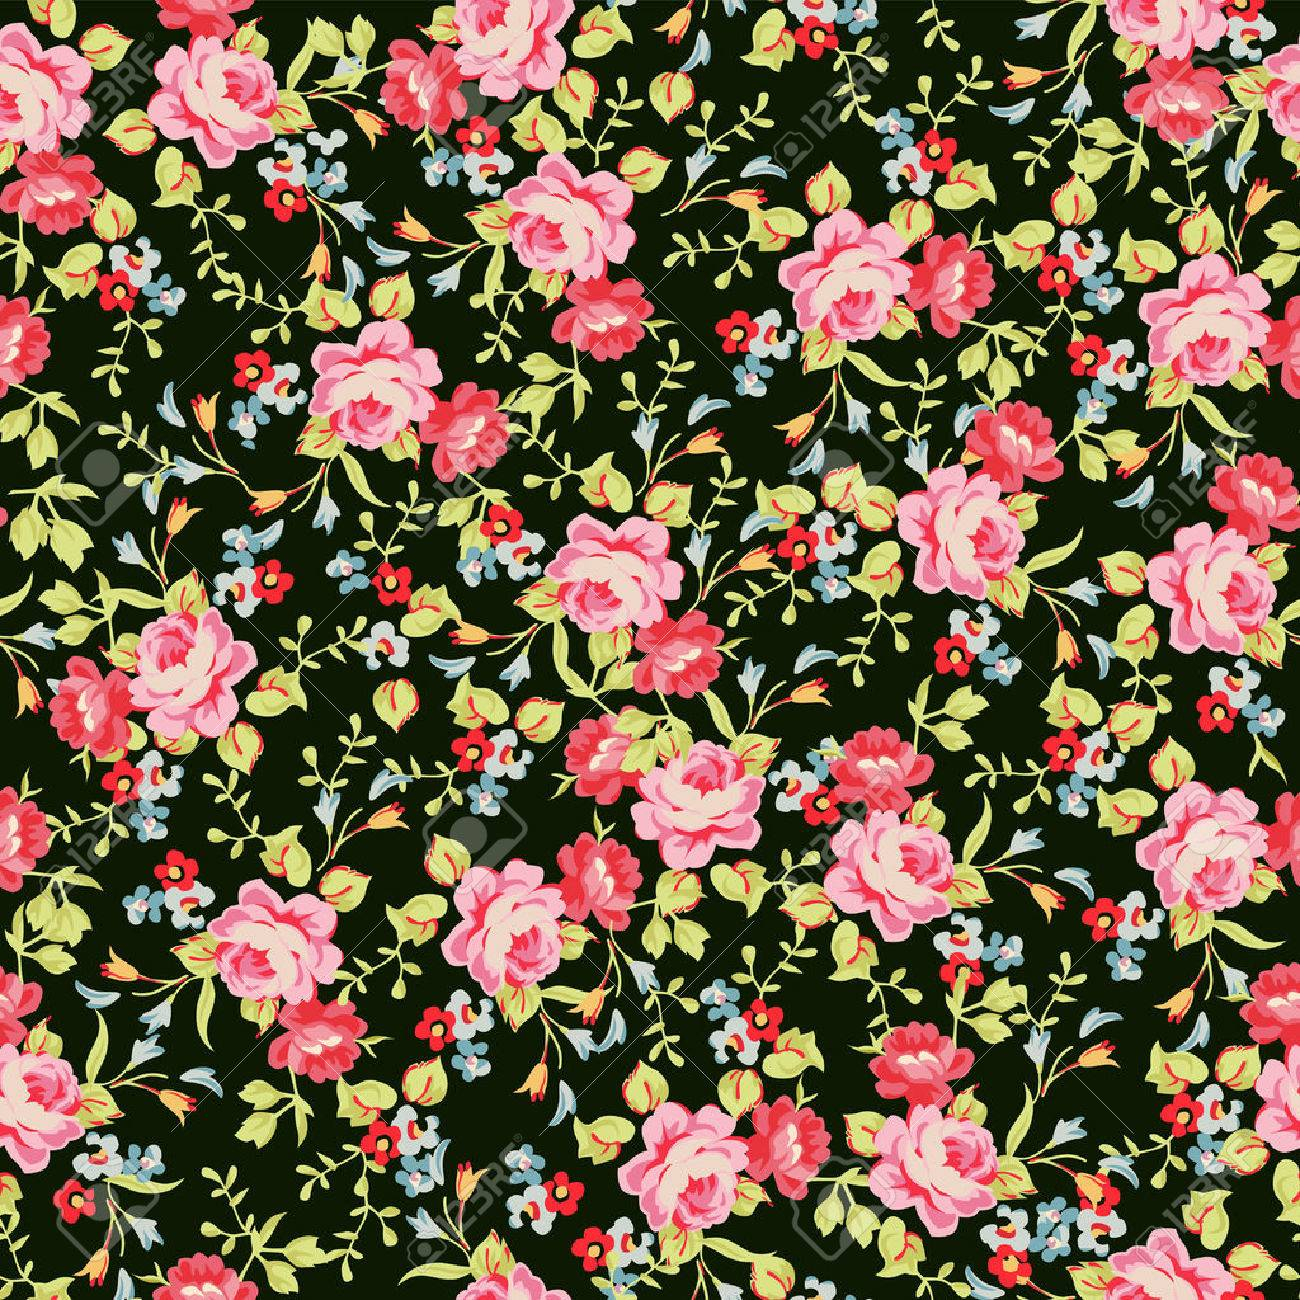 Seamless floral pattern with little pink roses - 60399991